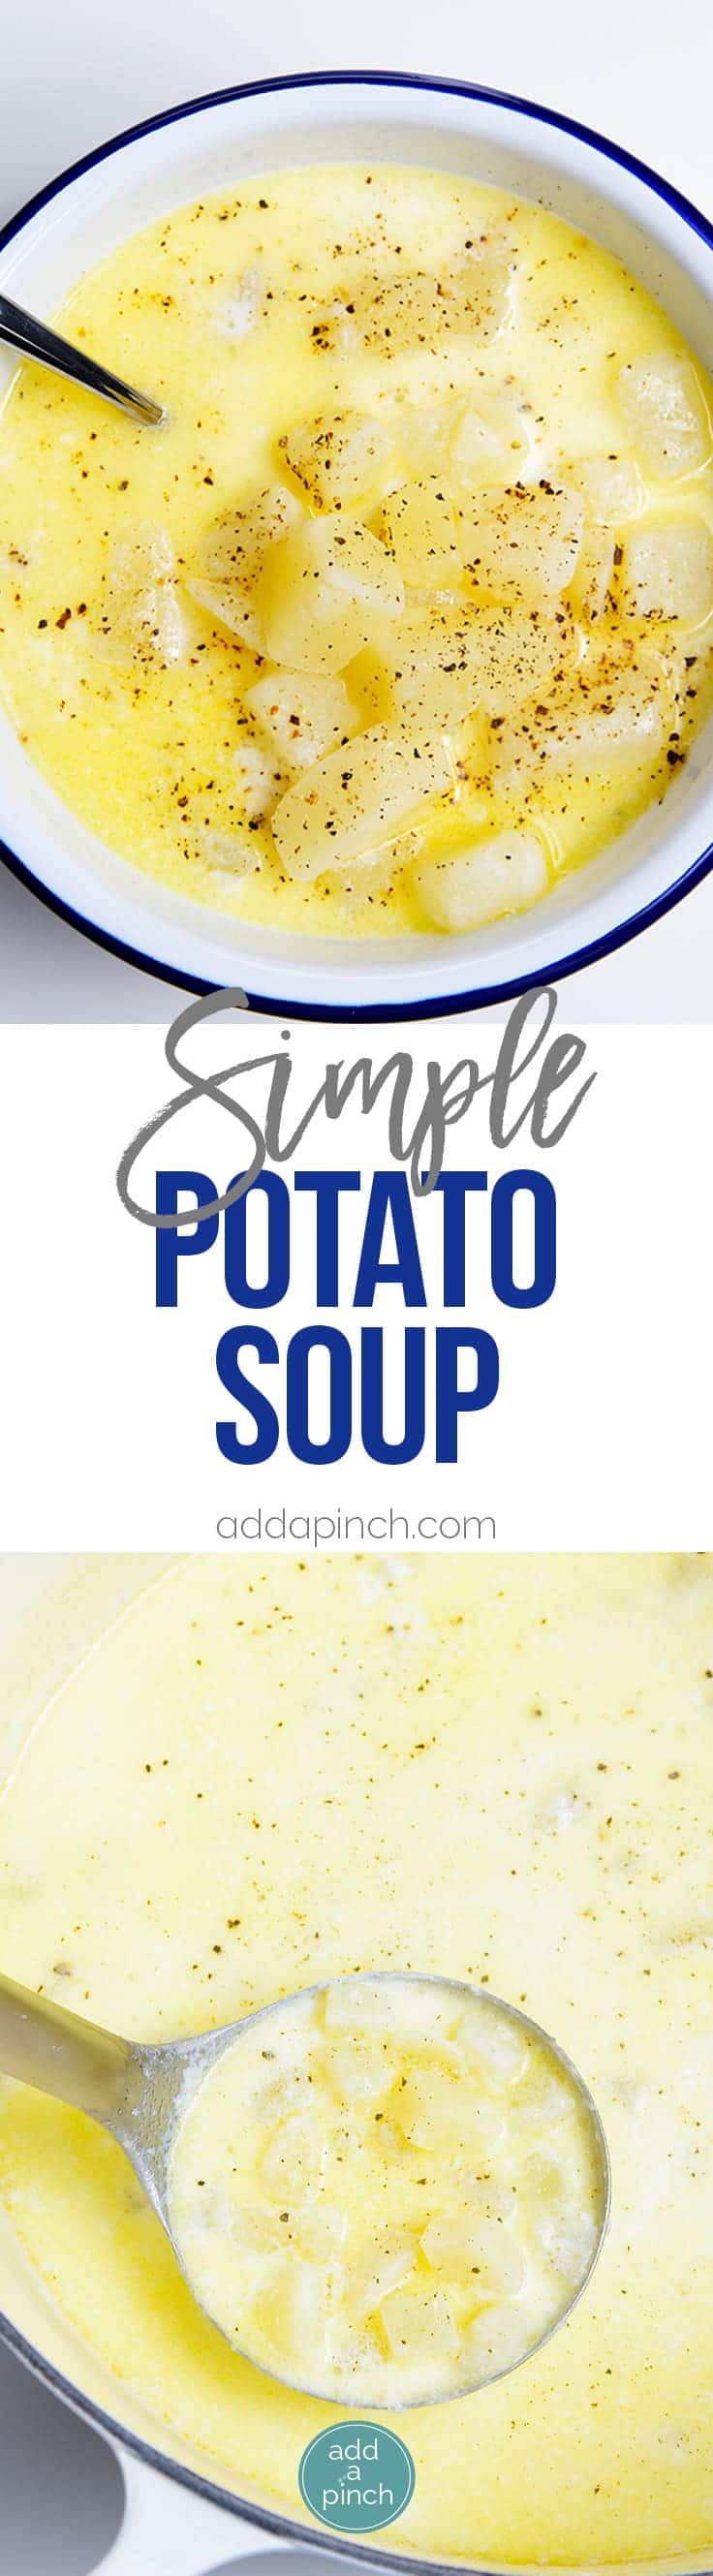 How to make old fashioned potato soup 57